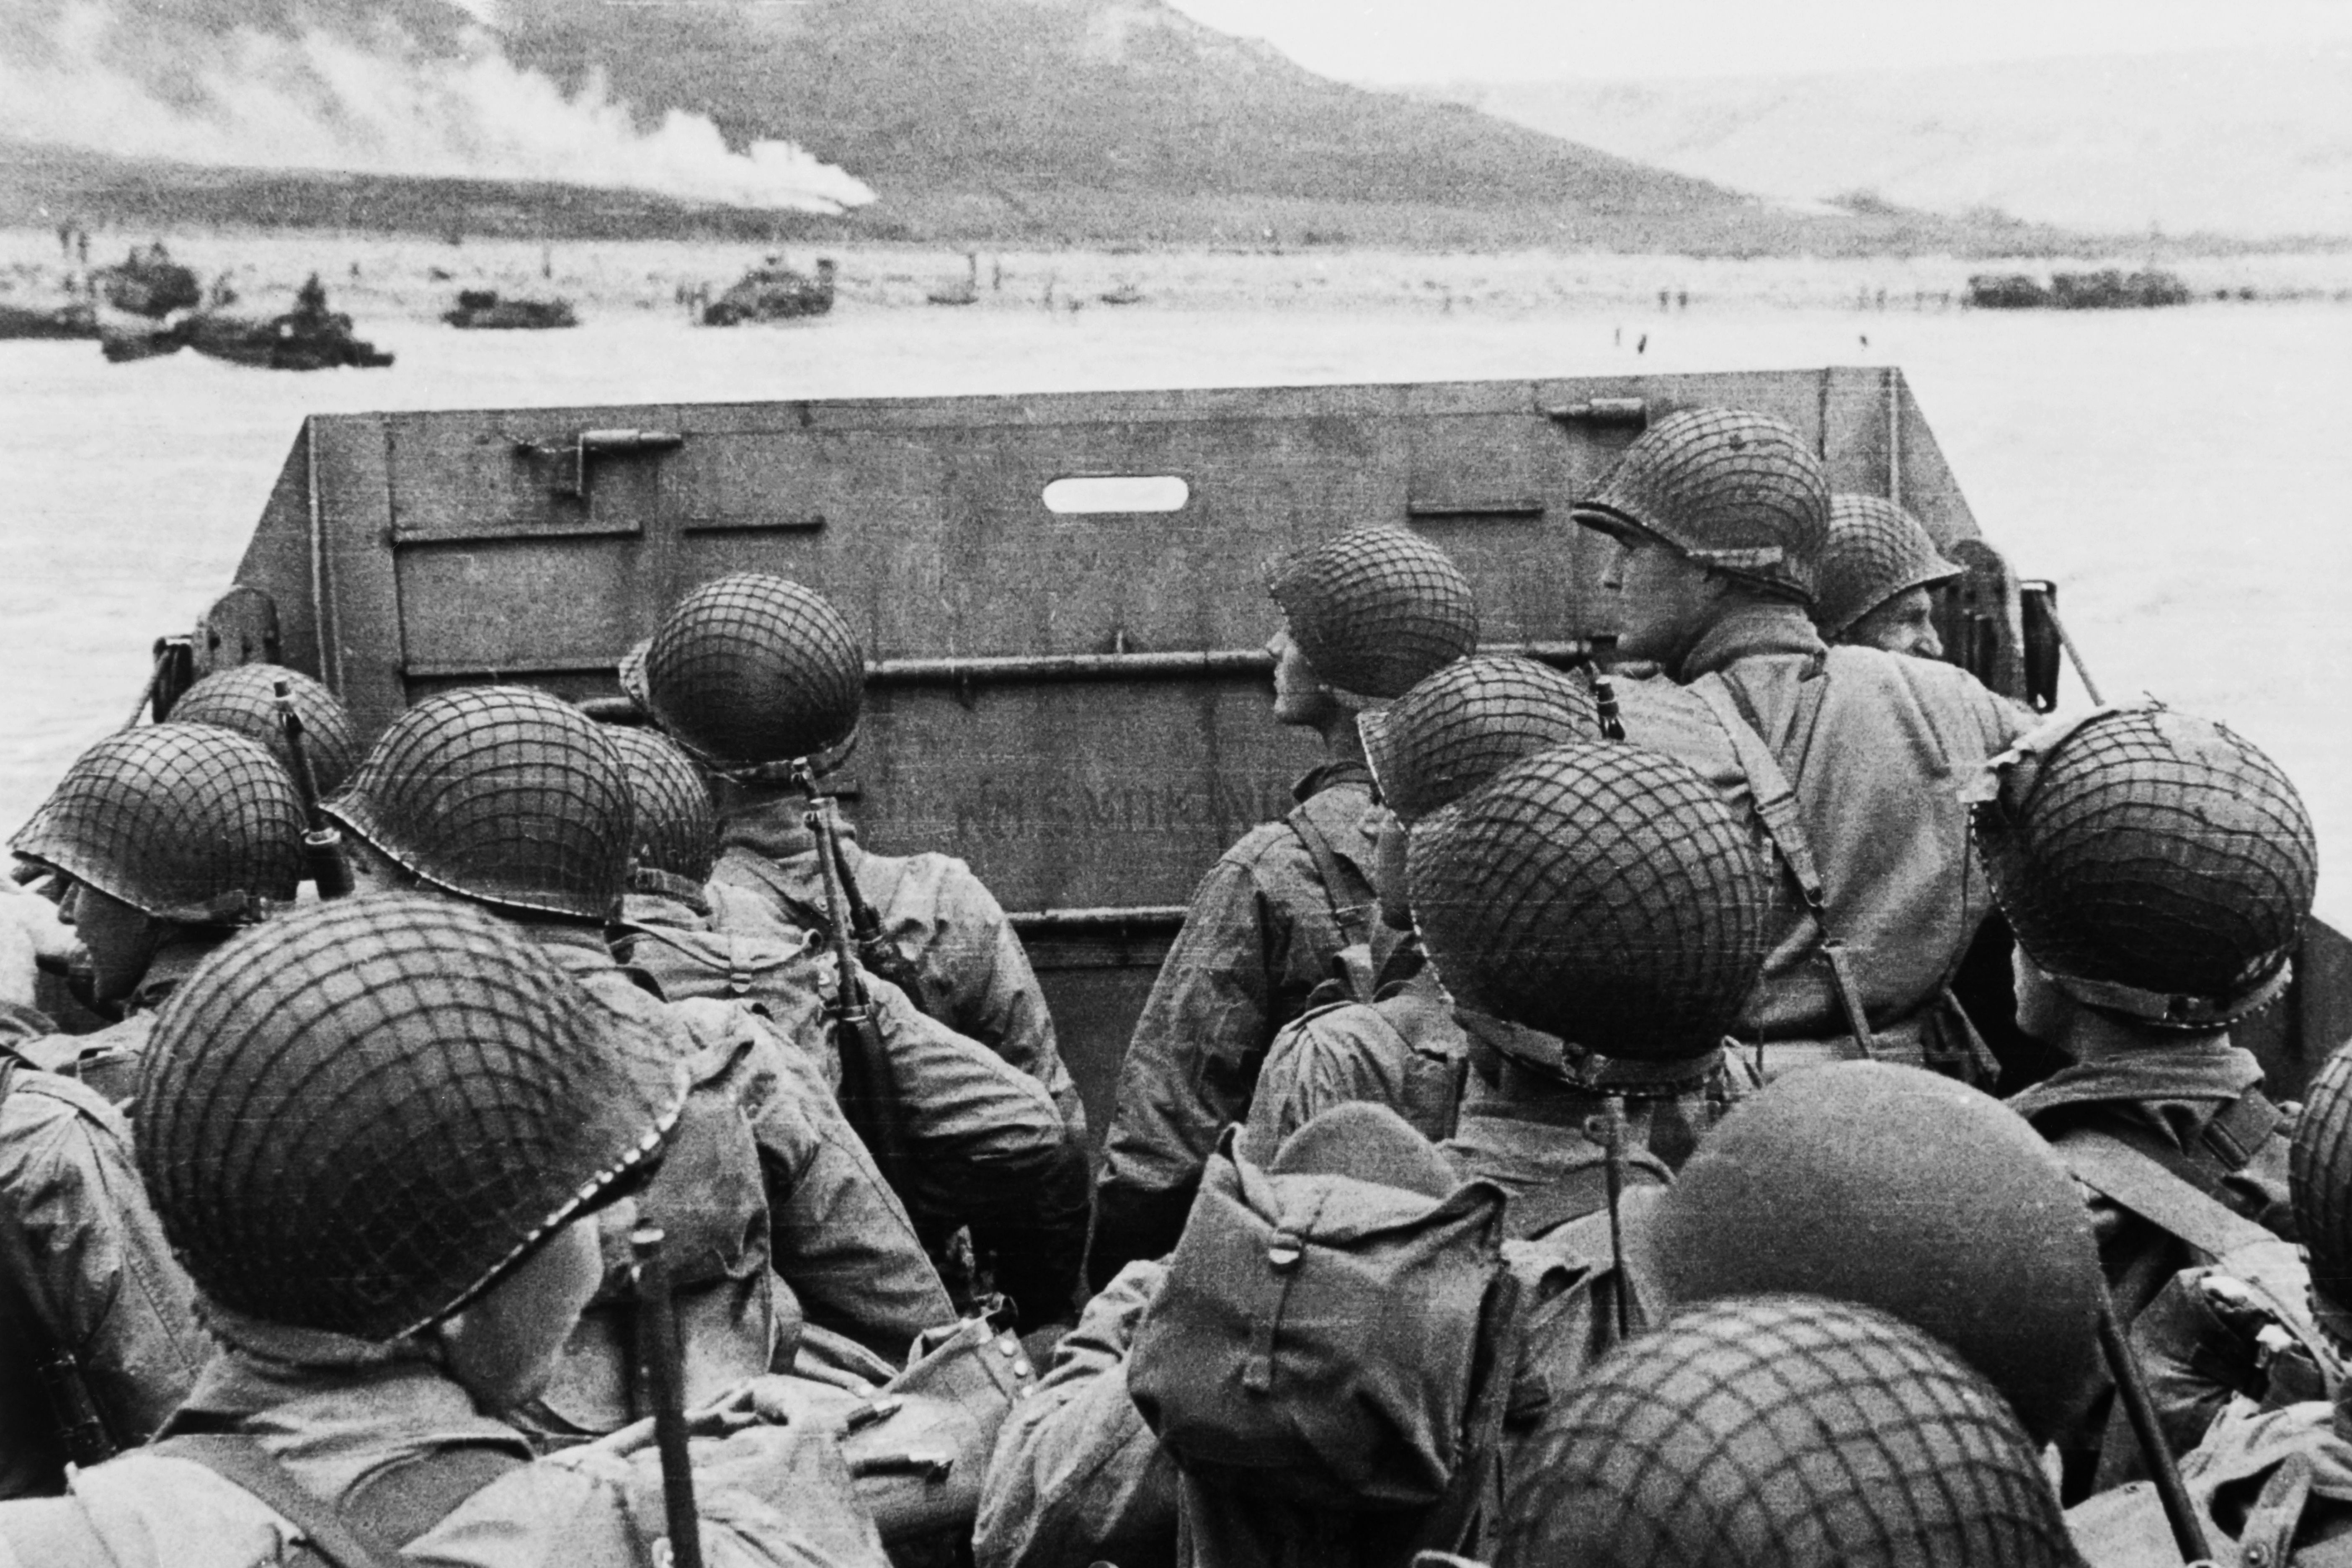 American assault troops in a landing craft huddle behind the shield 06 June 1944 approaching Utah Beach while Allied forces are storming the Normandy beaches on D-Day. D-Day, 06 June 1944 is still one of the world's most gut-wrenching and consequential battles, as the Allied landing in Normandy led to the liberation of France which marked the turning point in the Western theater of World War II. (Photo by - / US ARMY PHOTO / AFP)